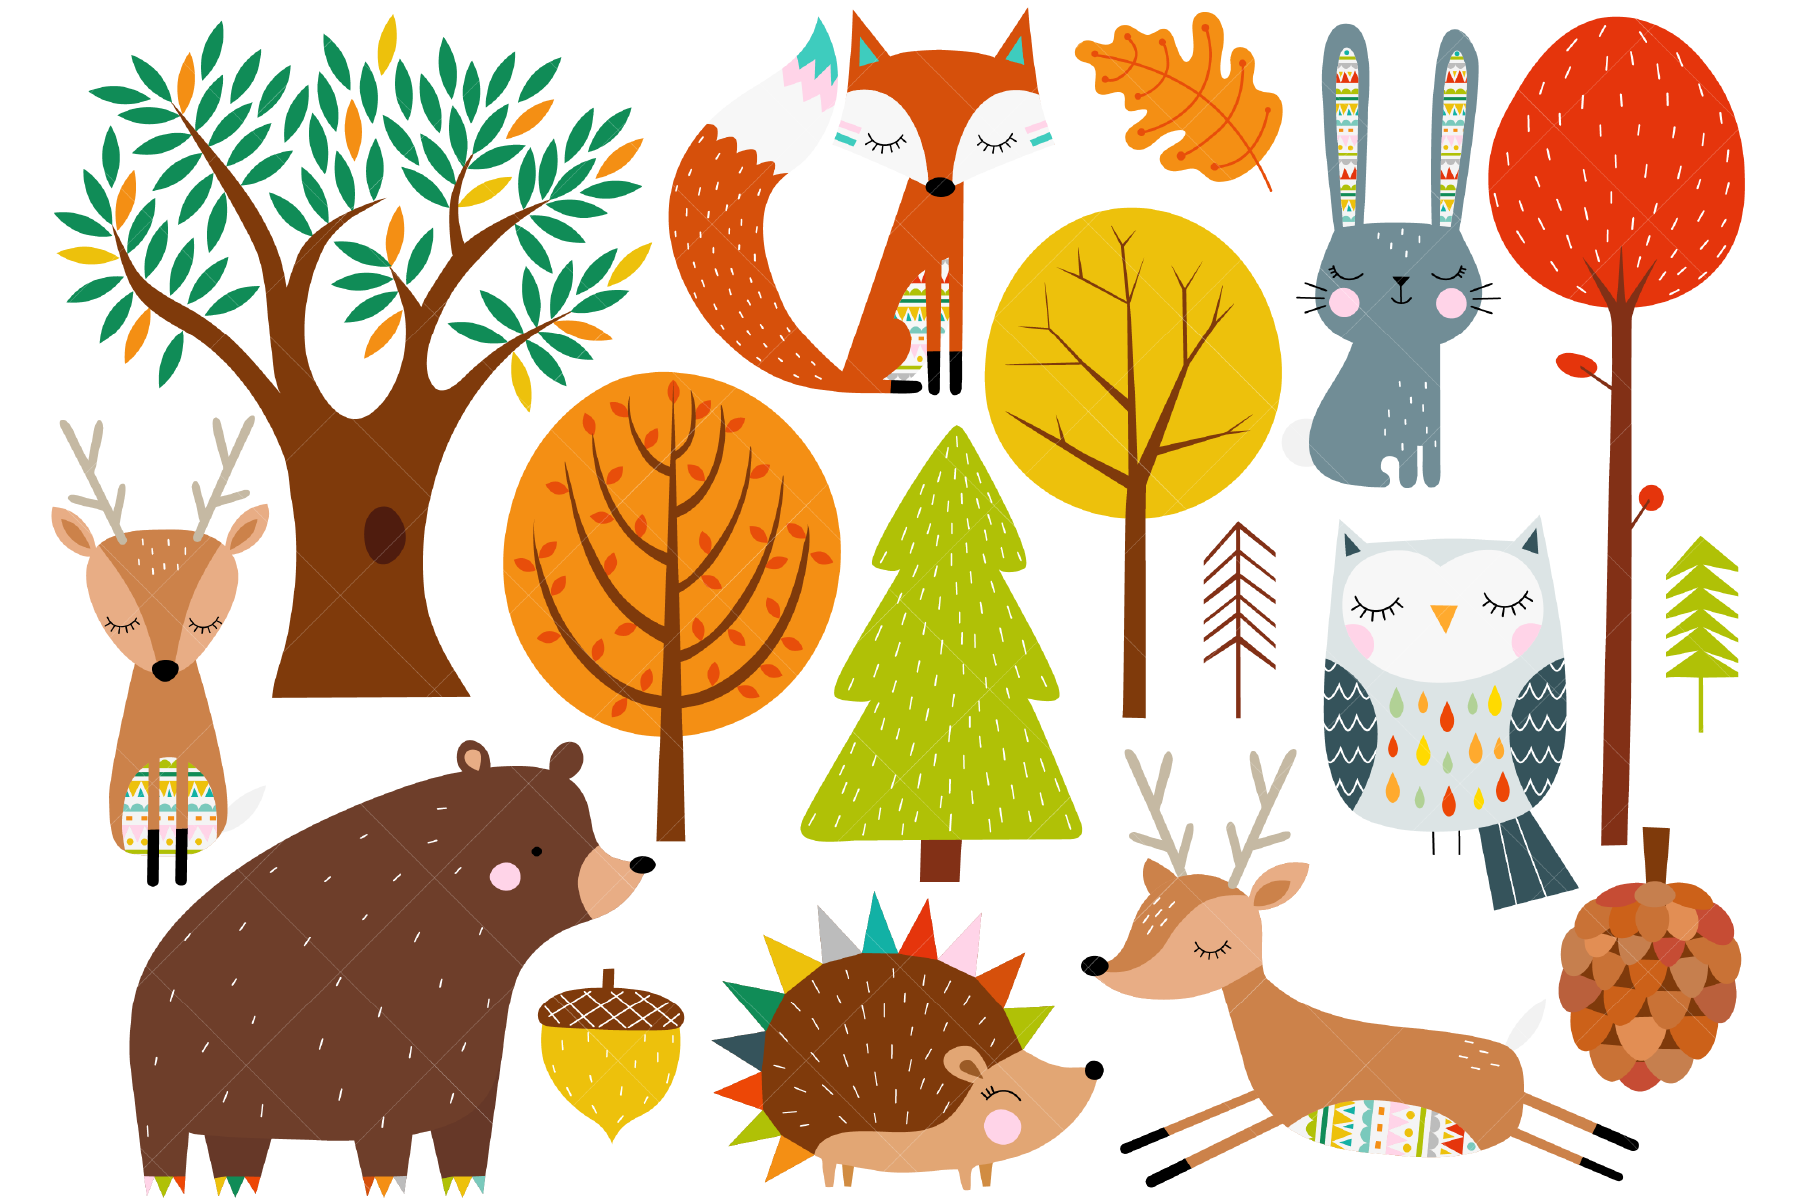 This Autumn Fall Woodland Set Features 17 Scandinavian Style Images Including A Fox Rabbit Bear Hedgehog Deer Owl Acorn Pinecone Leaf